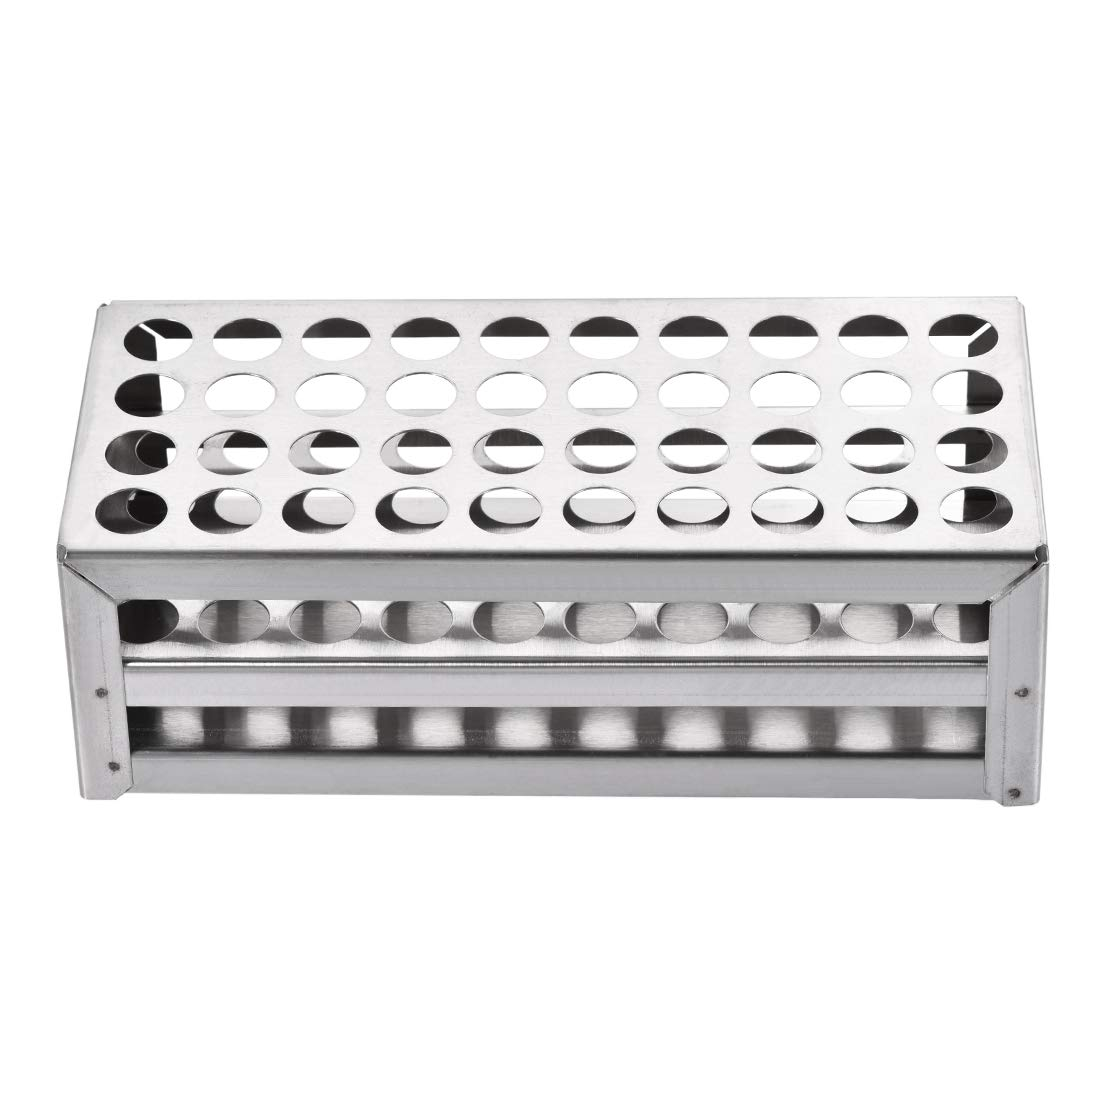 uxcell Stainless Steel Test Tube Holder Rack 40 Hole 3 Layer for 10-13mm Tubes